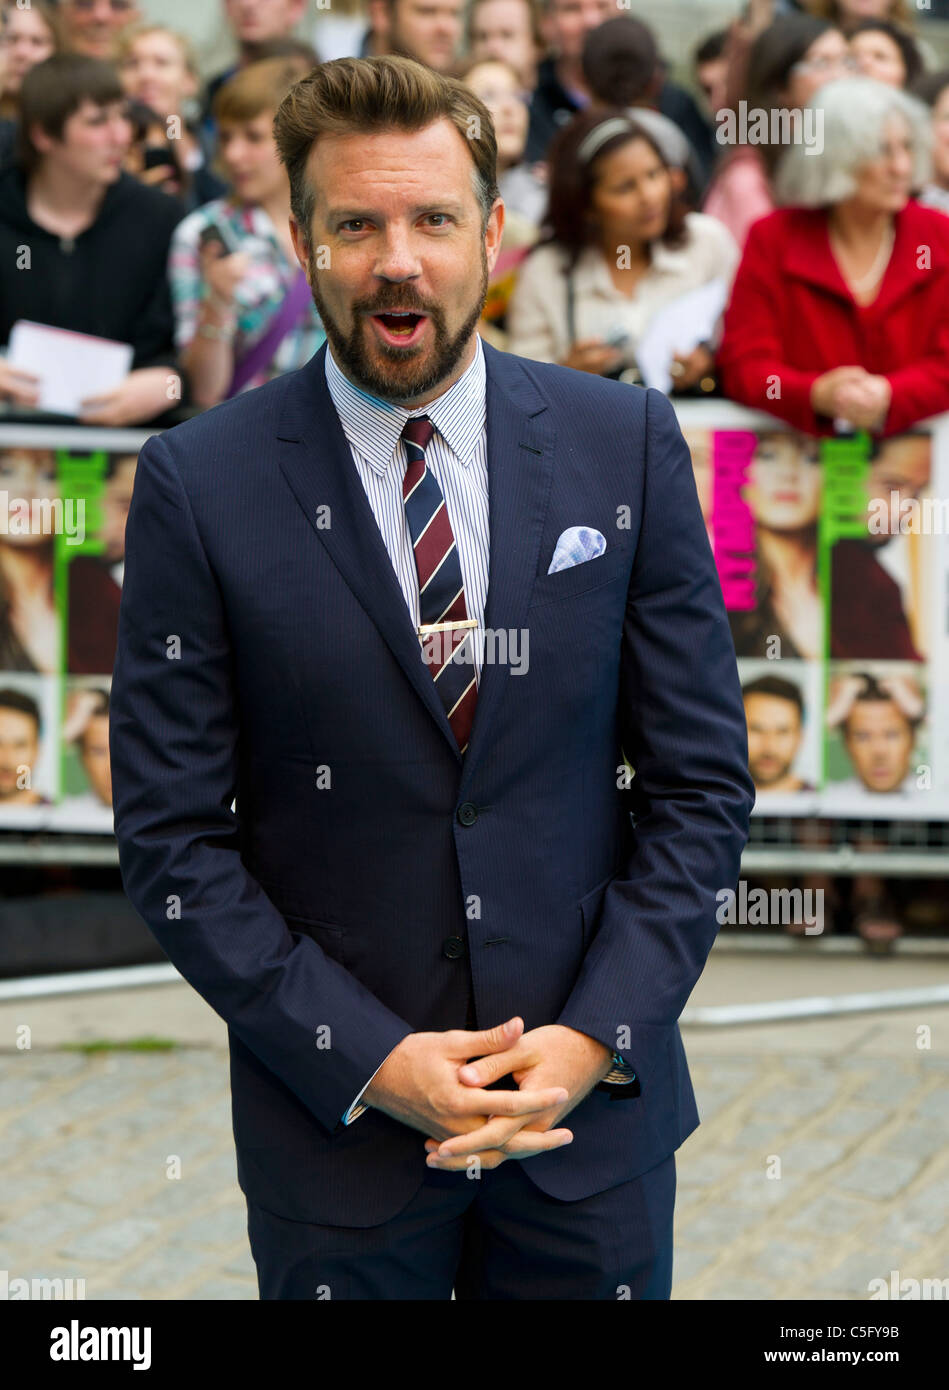 Jason Sudeikis attends the UK premiere of 'Horrible Bosses' at BFI Southbank on July 20, 2011 in London, - Stock Image